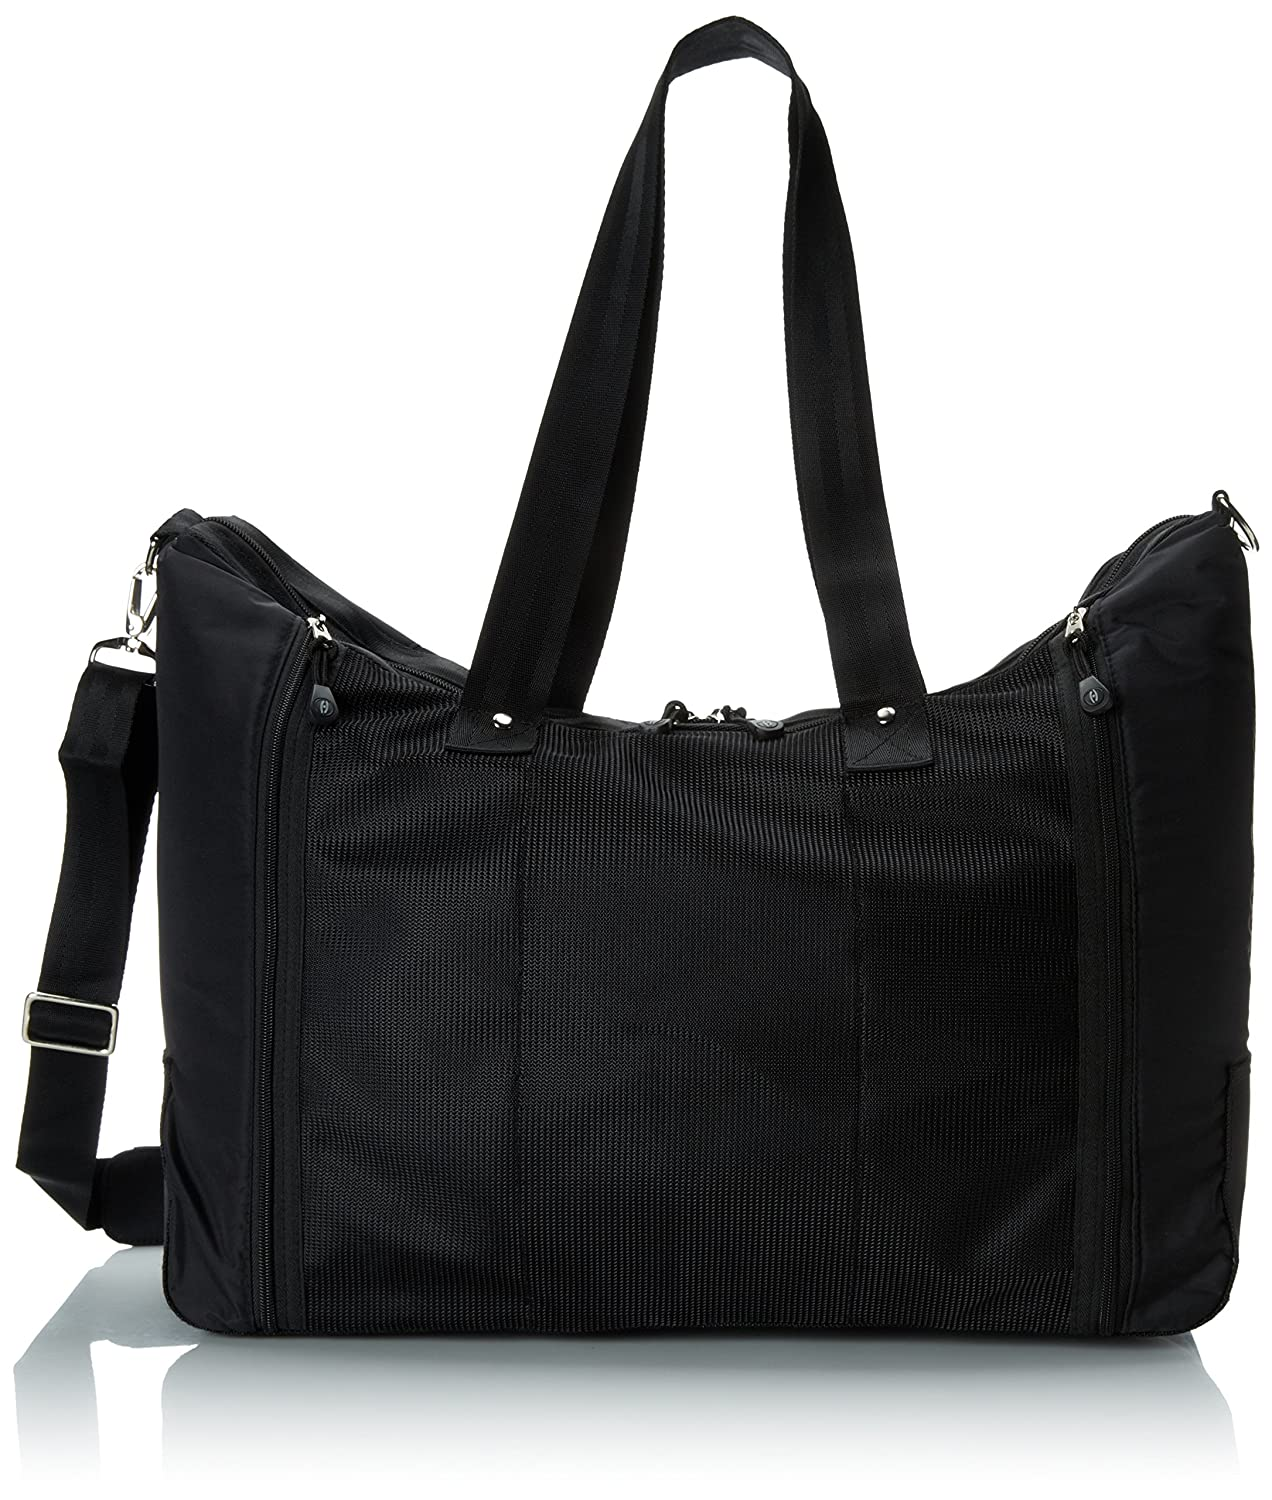 Harrow Women's Envy Bag, Black